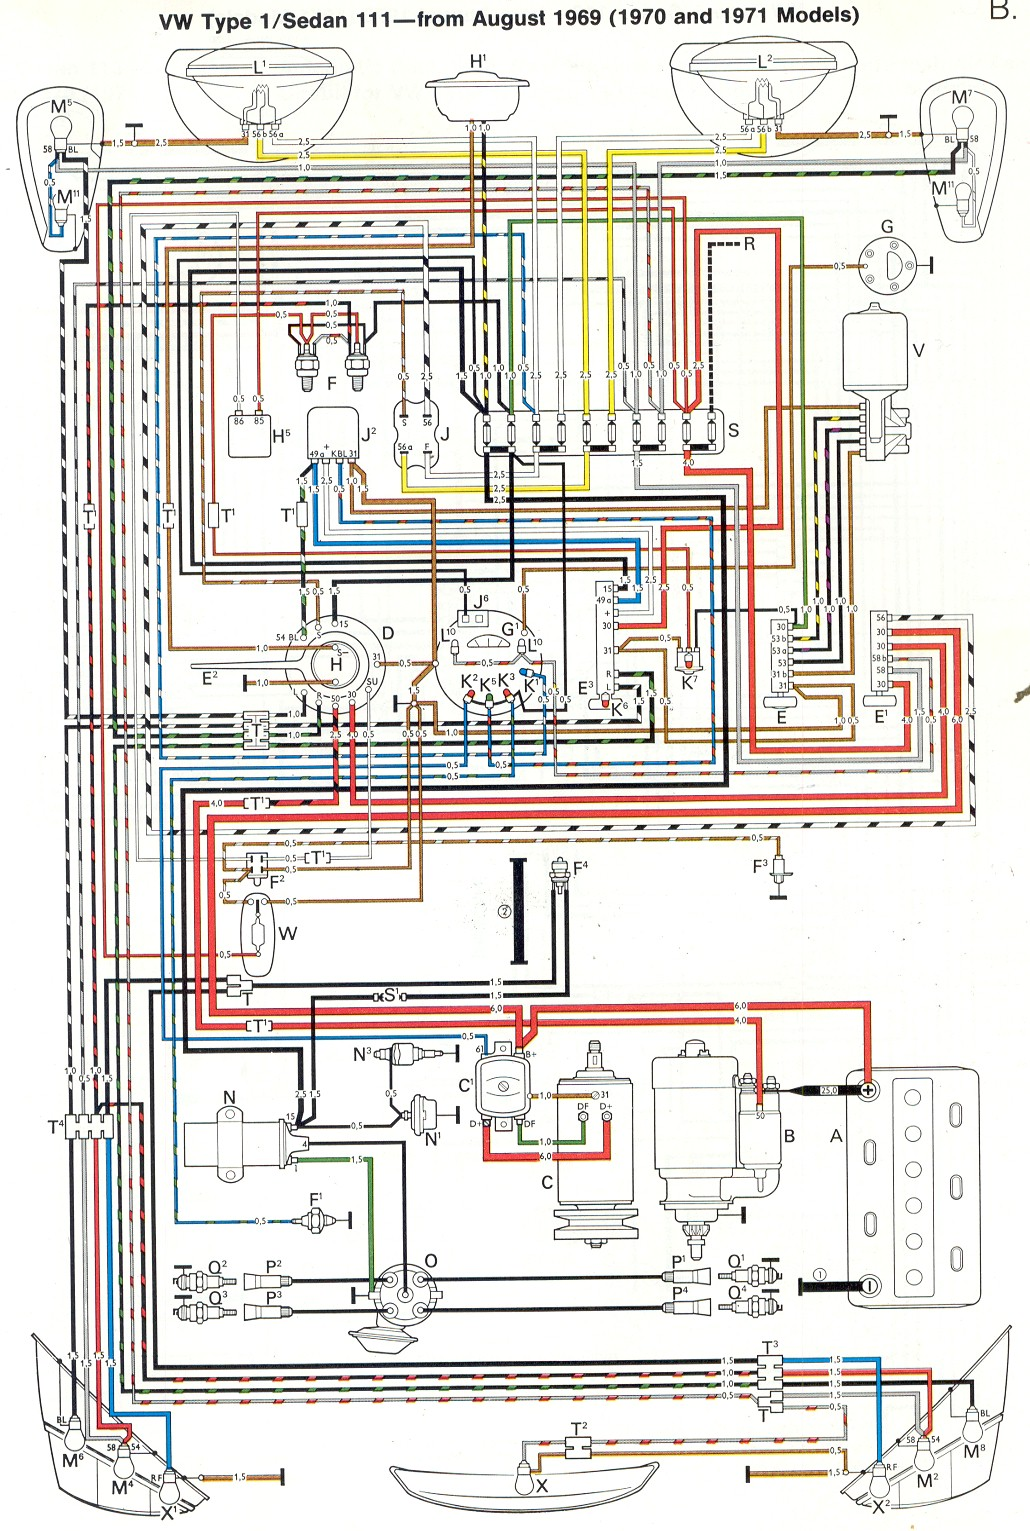 Turn Signal Wiring Diagram 1971 Vw Archive Of Automotive Beetle Bug Starting Know About U2022 Rh Benjdesigns Co